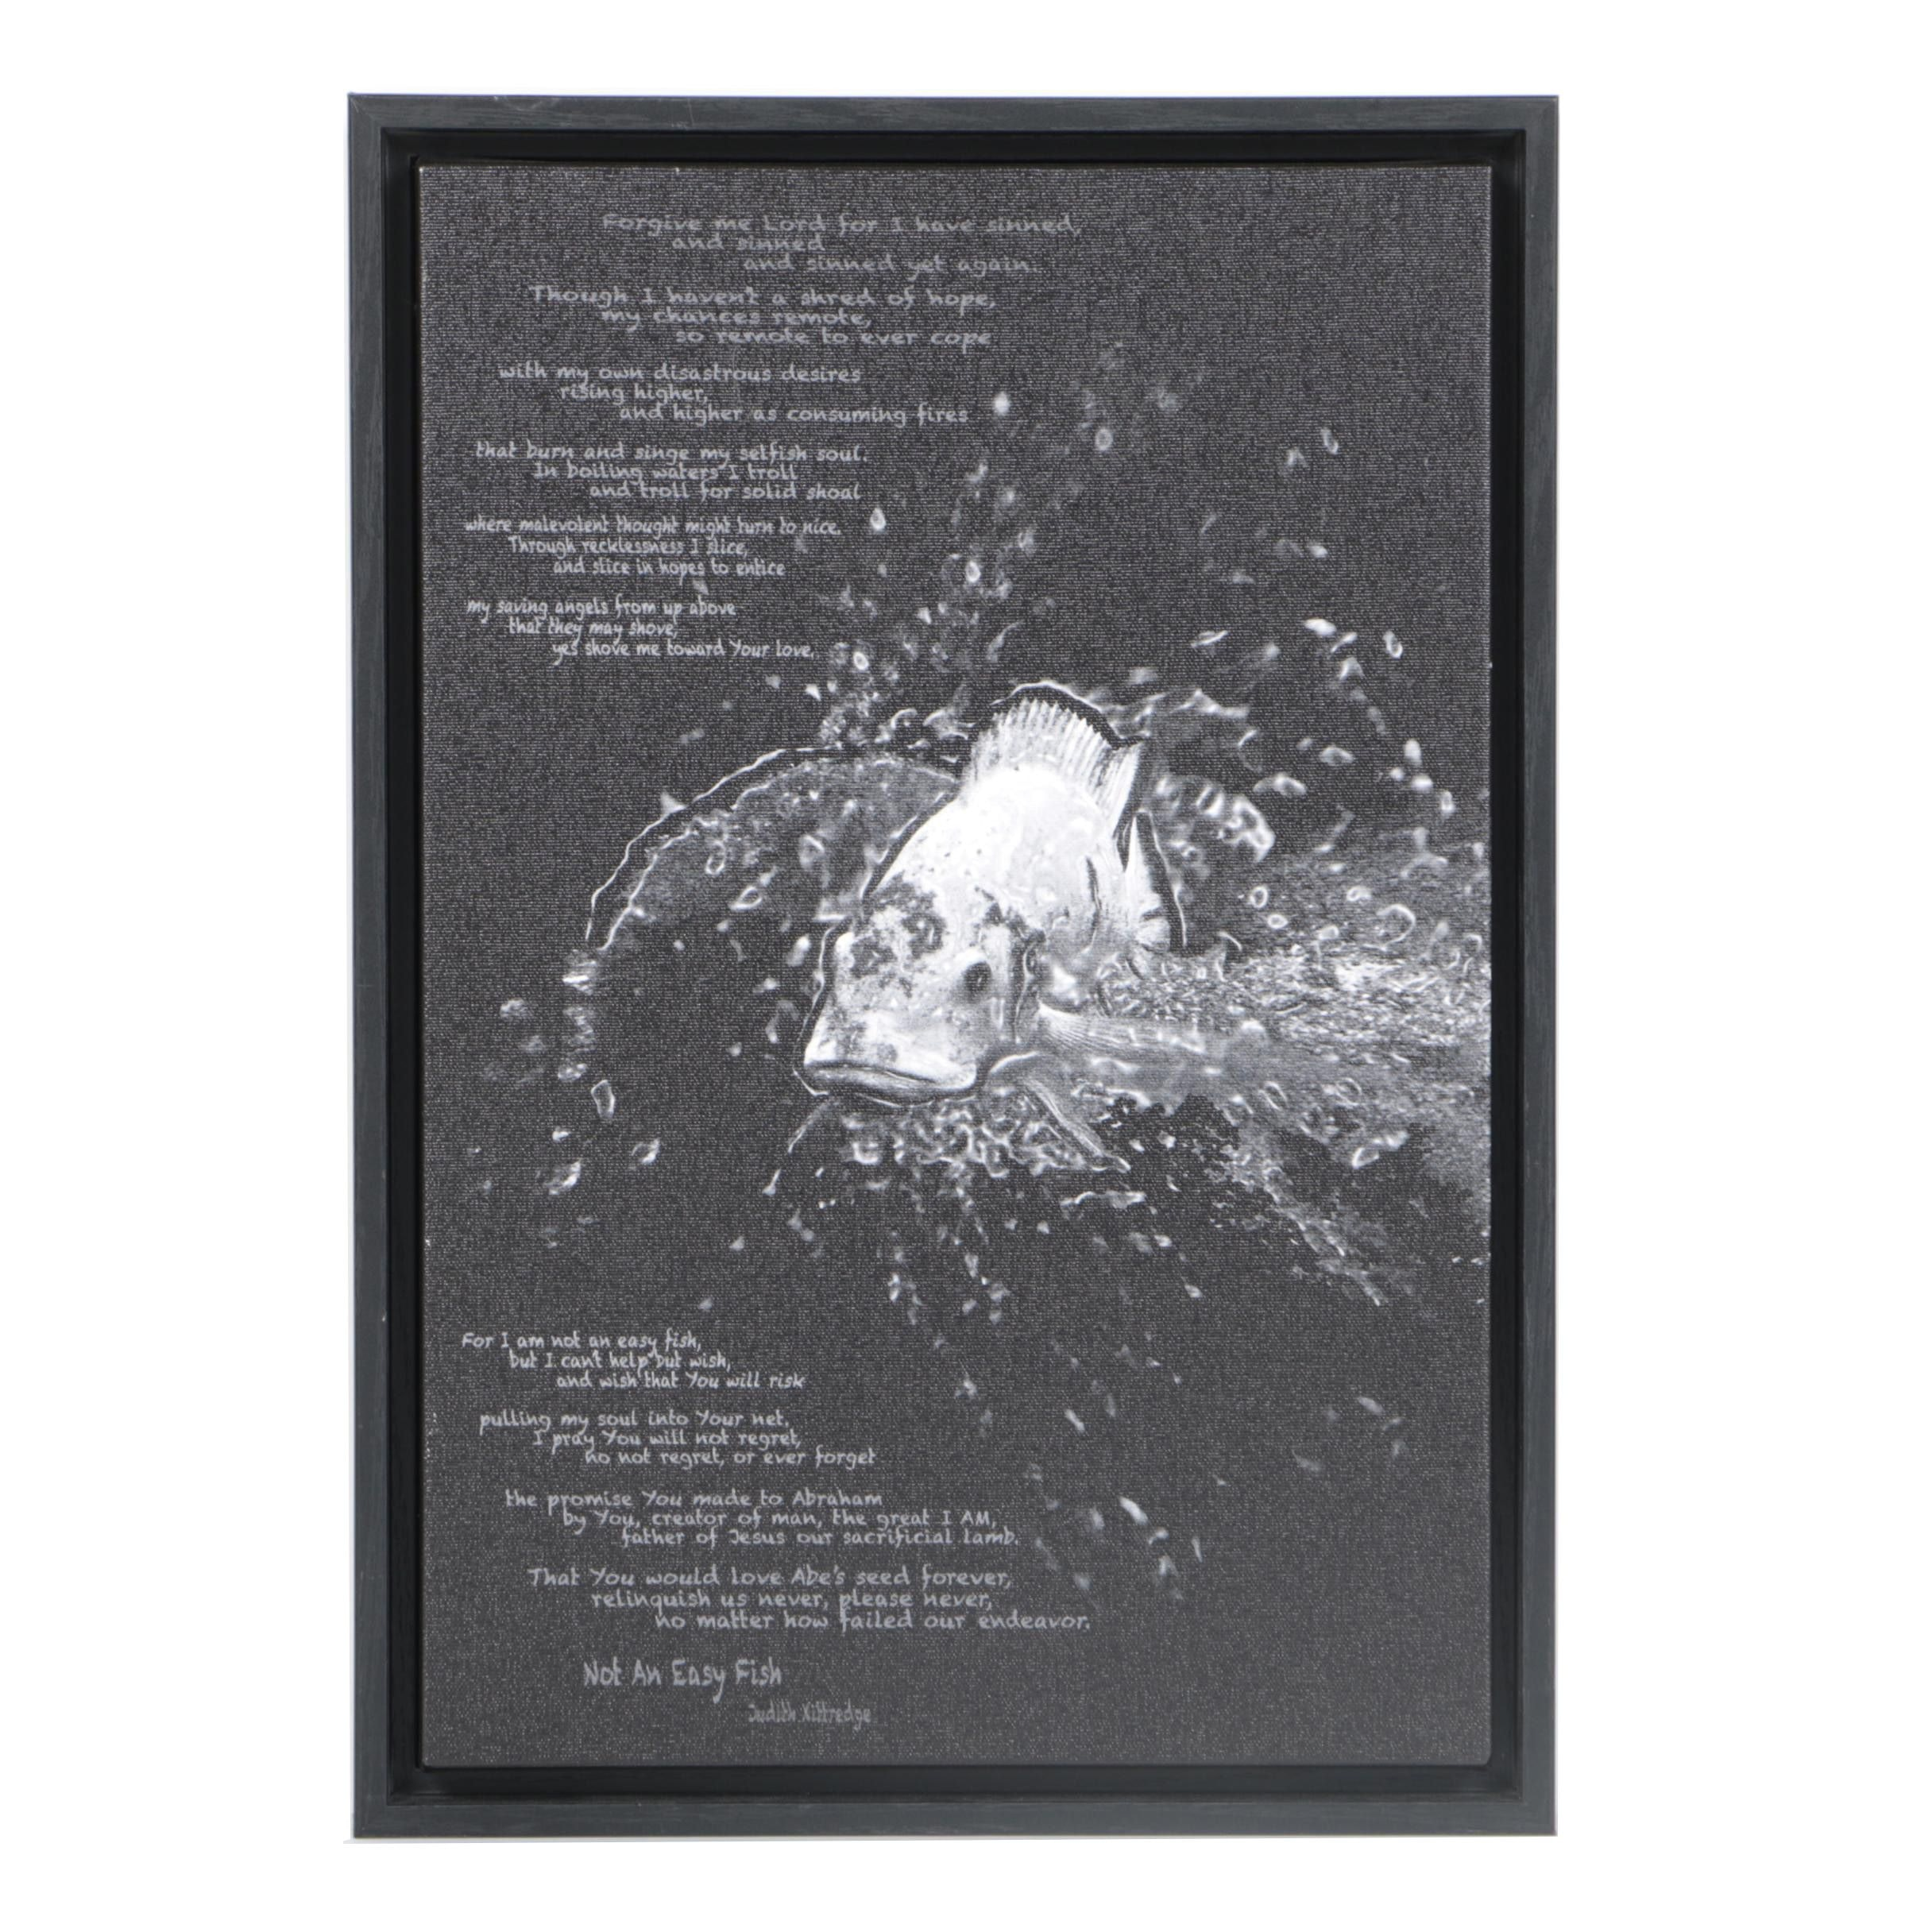 """Giclée Print on Canvas After Judith Kittredge's Poem """"Not an Easy Fish"""""""